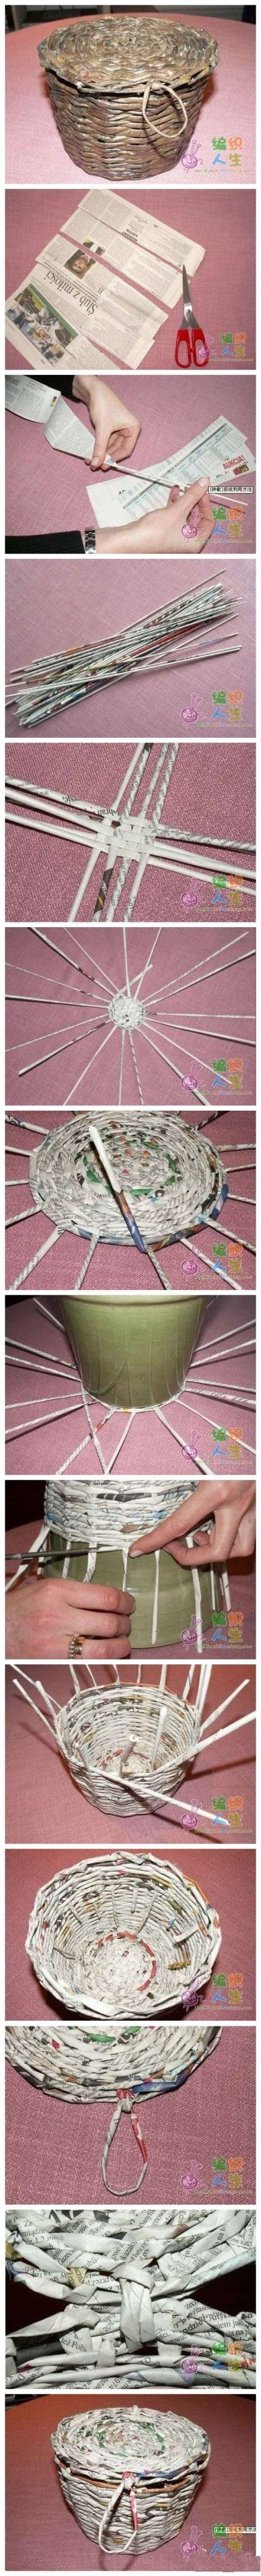 How to make a basket or container out of newspaper